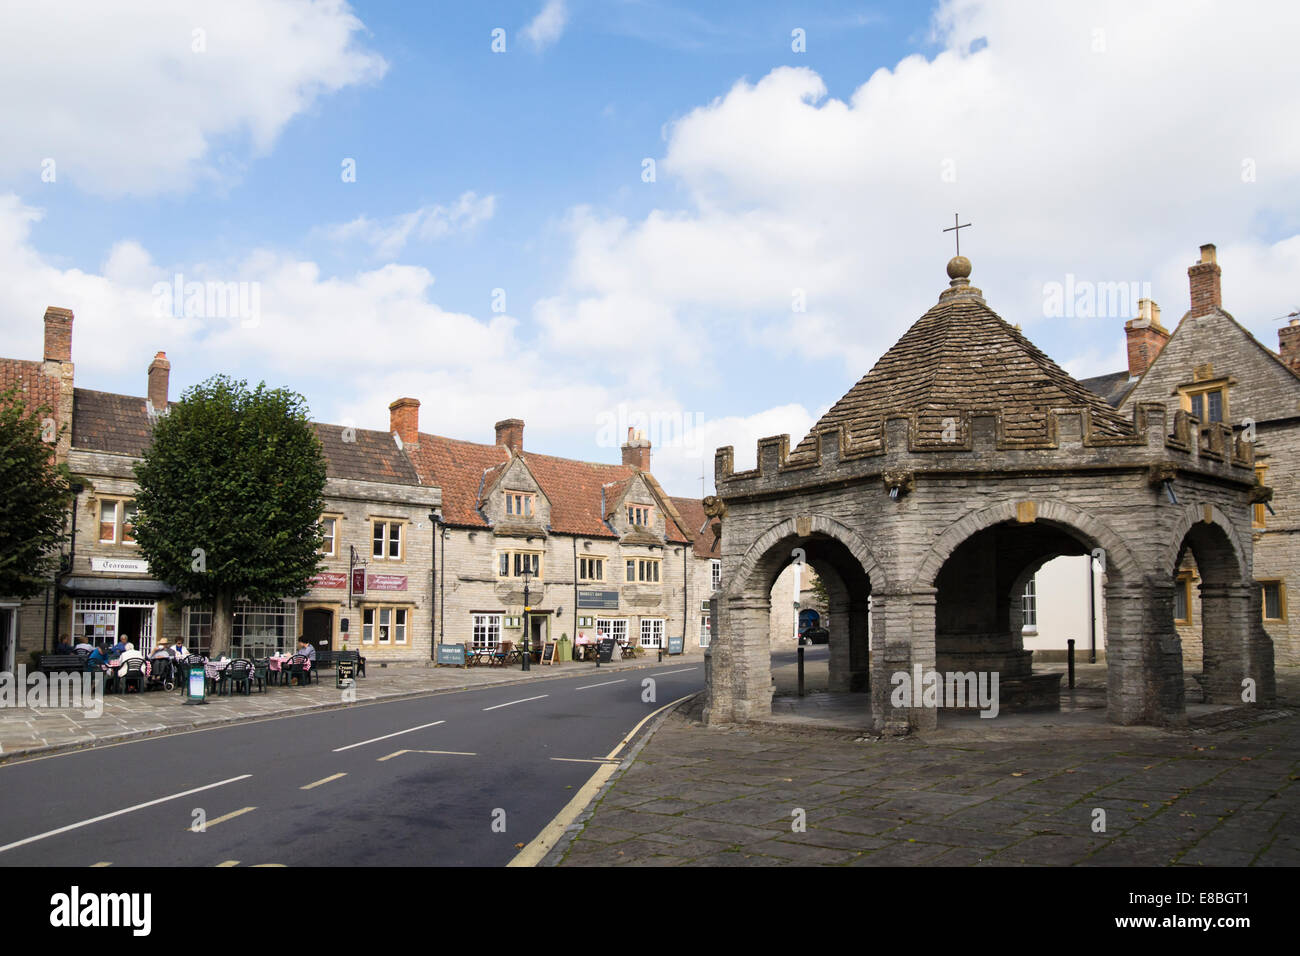 Somerton a small town in somerset England UK the square - Stock Image